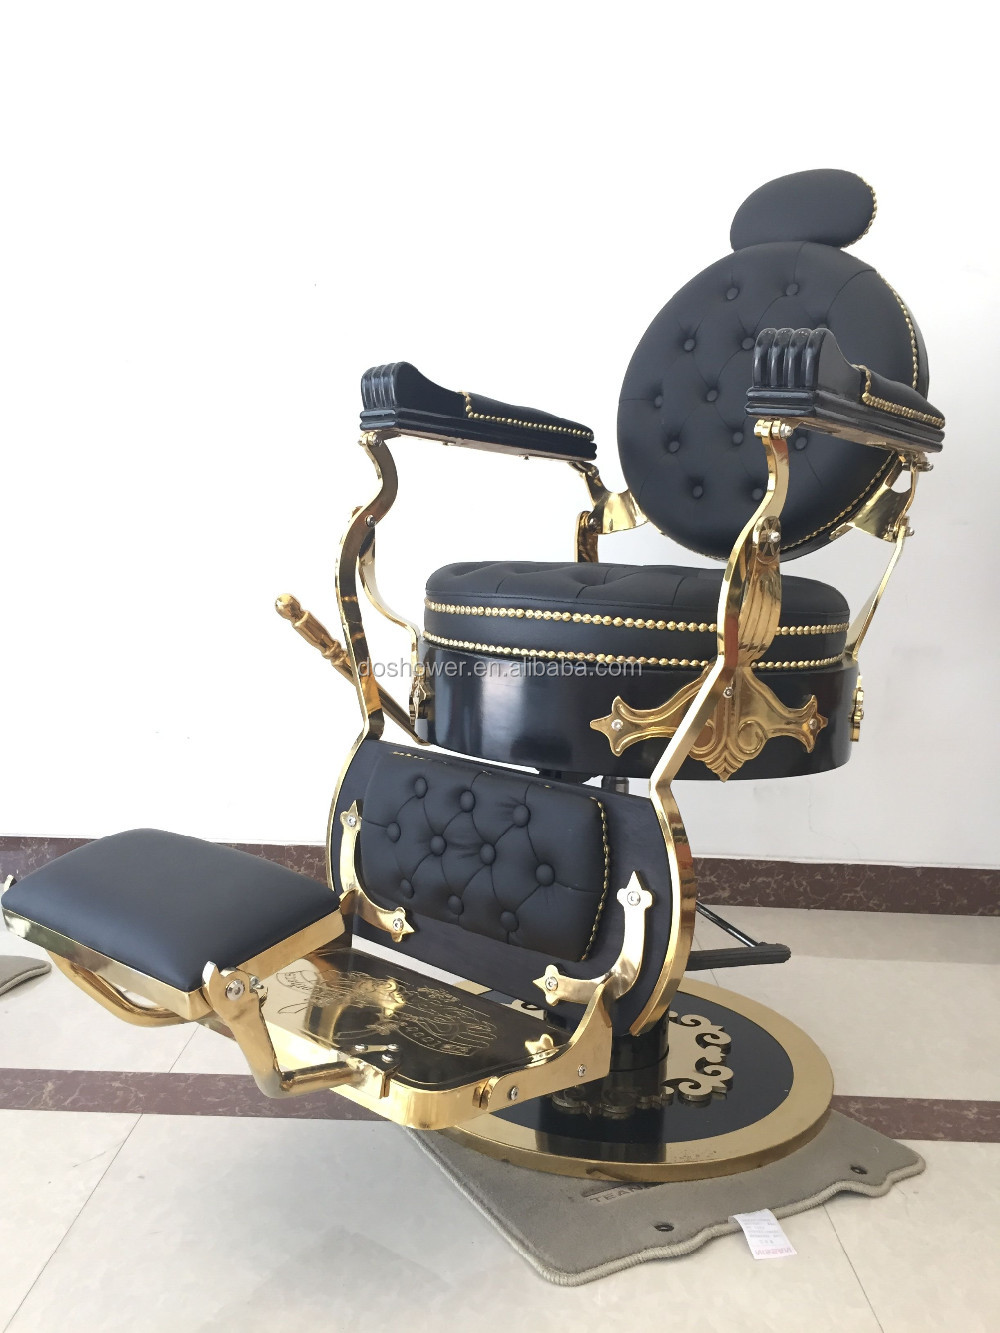 Doshower Barber Chair Dimensions Barber Chair Footrest